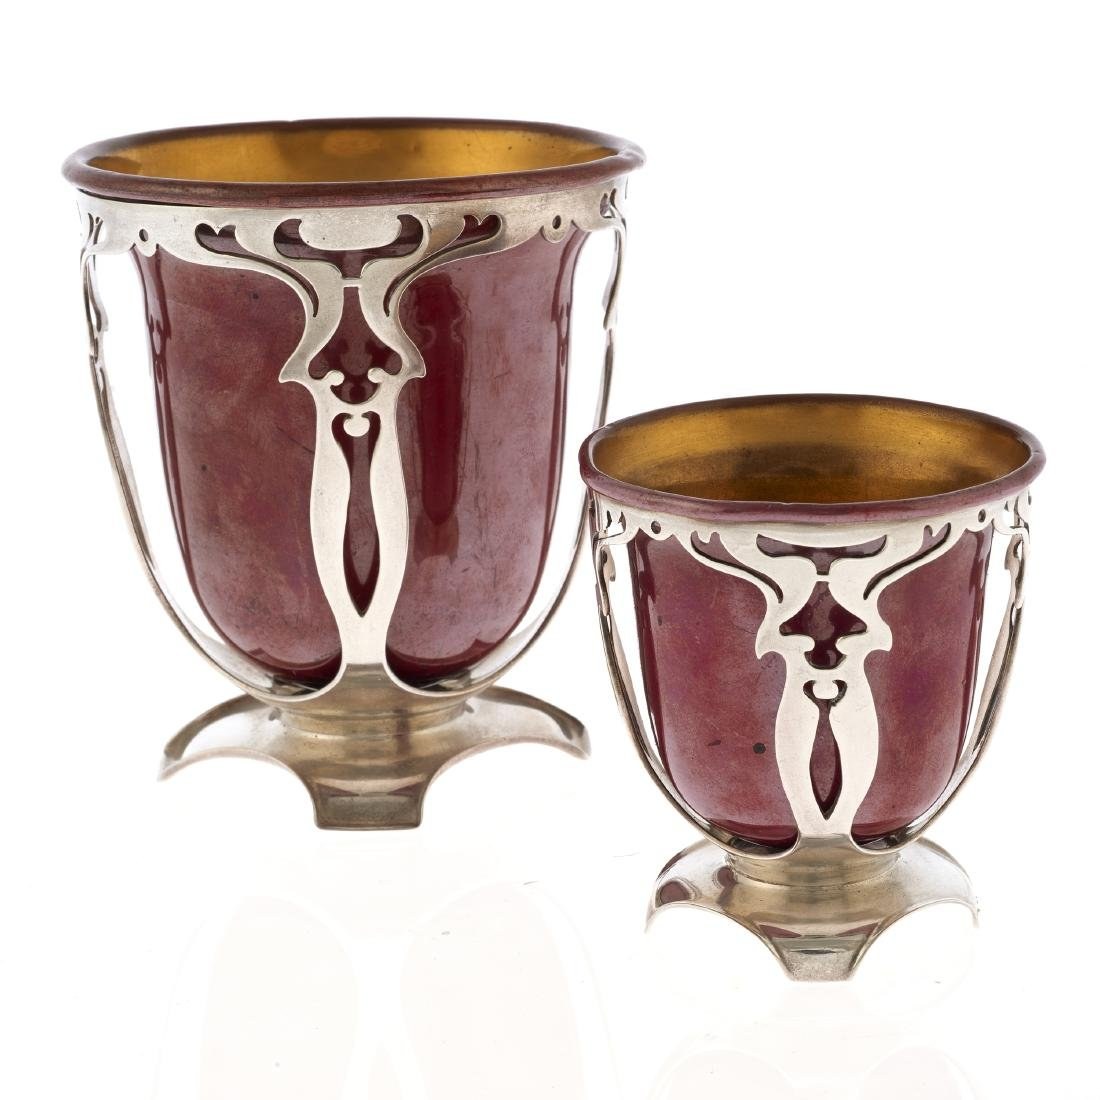 A Gorham mixed metal set of two graduated cups